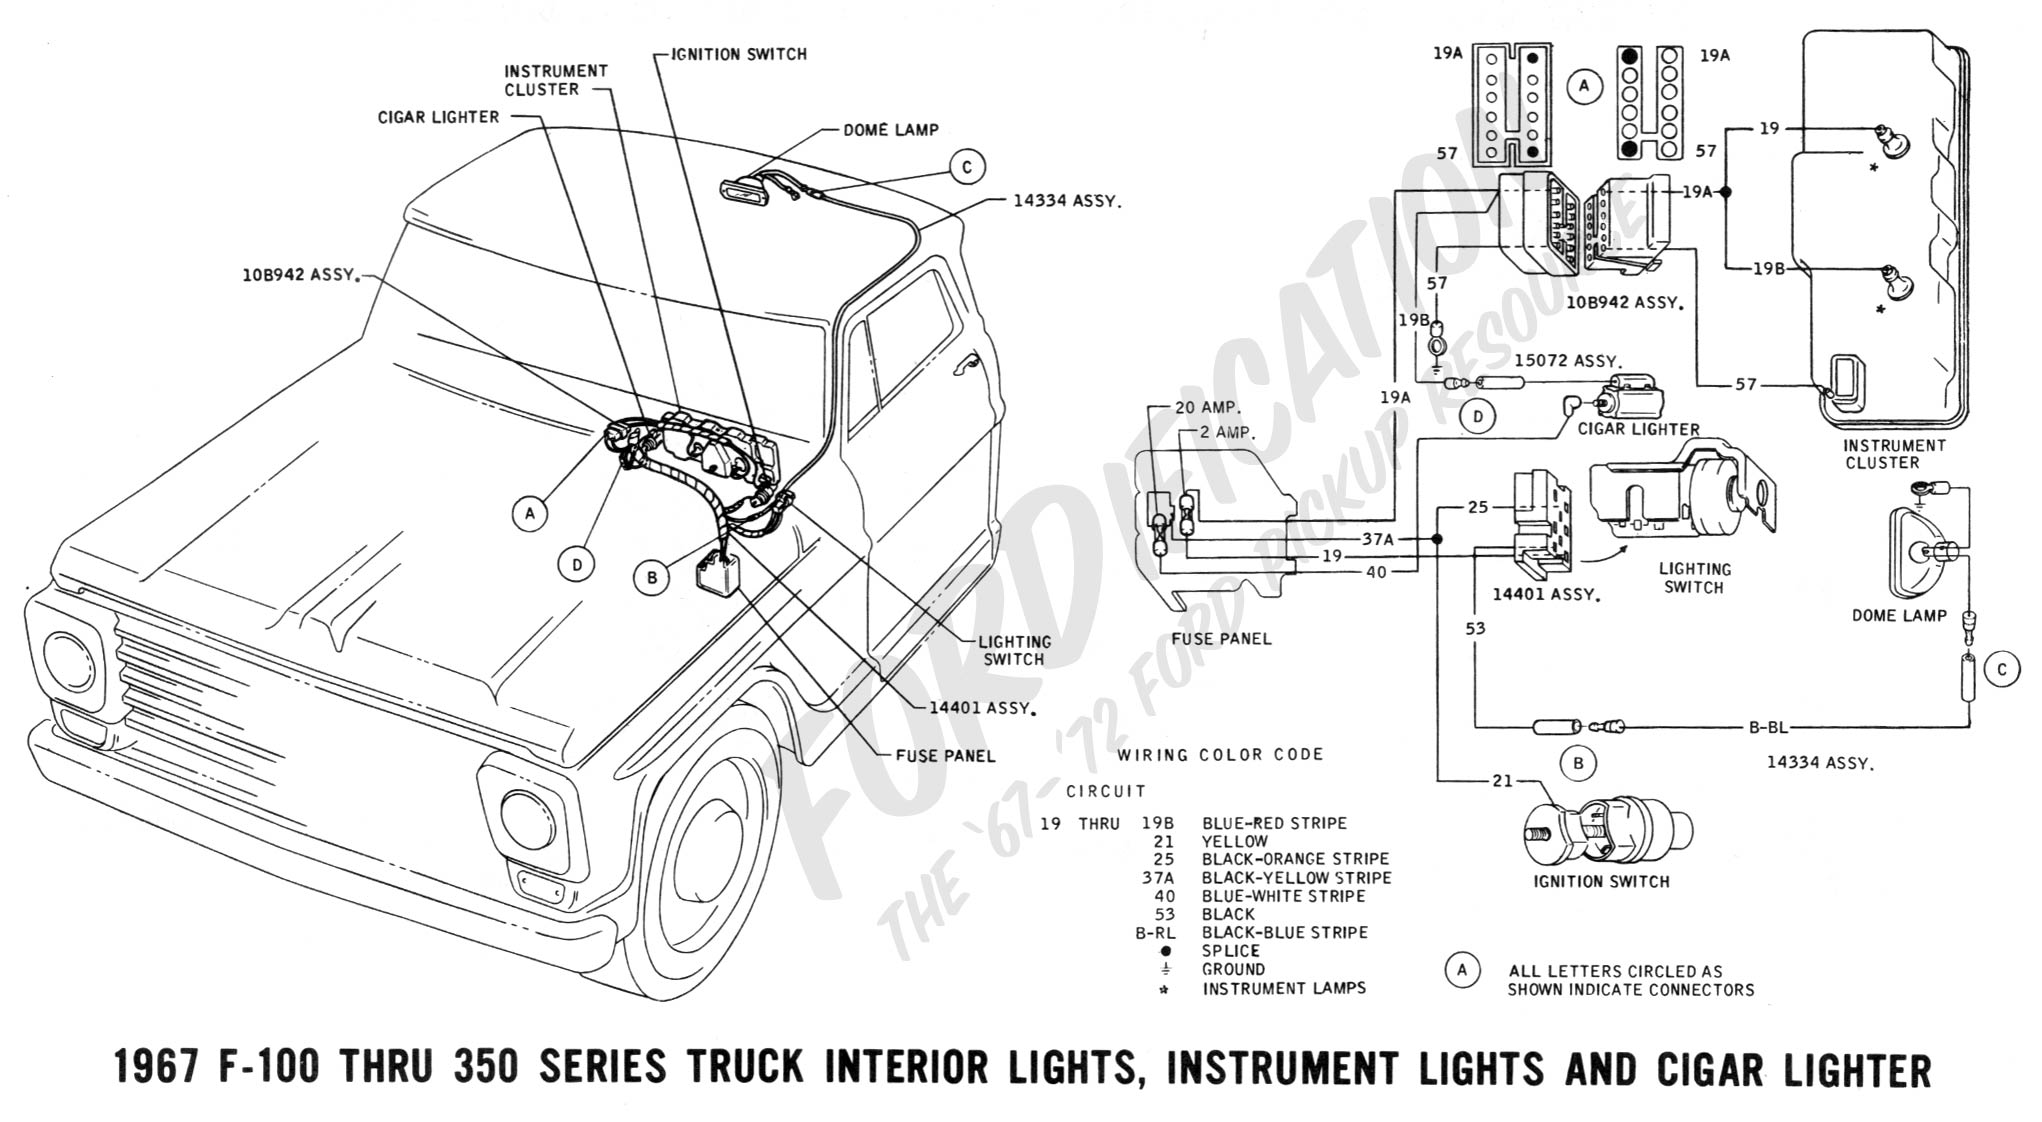 77 F100 Wiring Diagram in addition Viper Car Alarm Wiring Diagram 03 Dodge Ram 1500 furthermore Discussion C13911 ds652668 moreover Steering Knuckle Location together with 1202462 Wiper Motor Wiring. on 78 ford f 150 wiring diagram